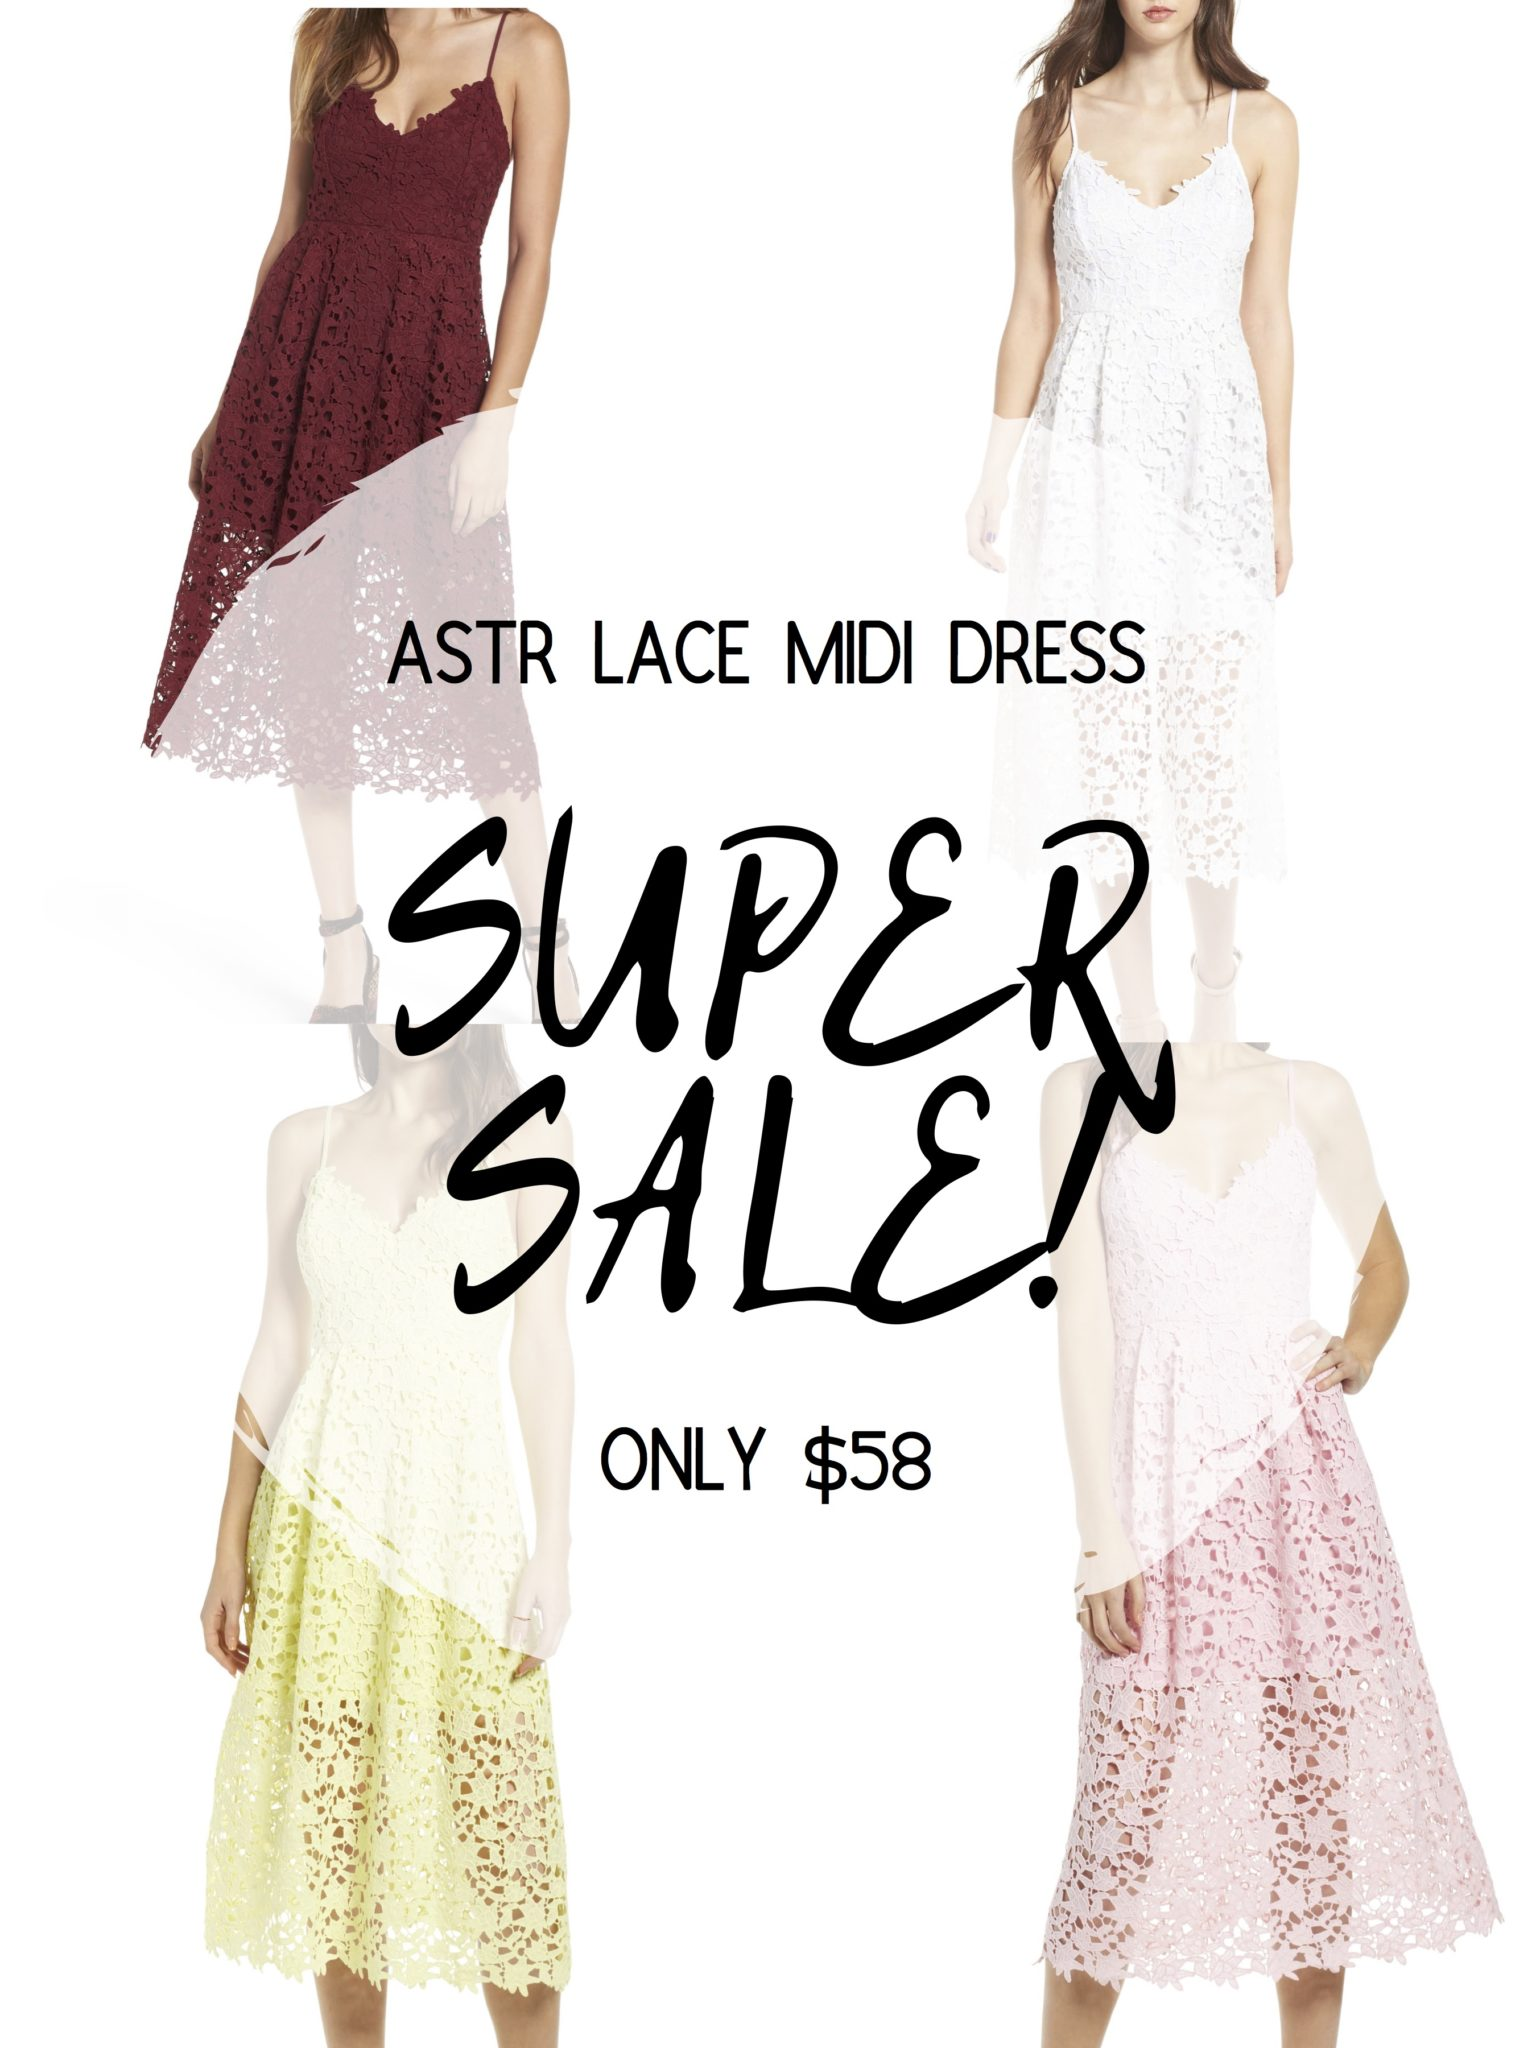 Sale Alert - Two Must Have Versatile Dresses for Summer by popular Austin fashion blog, Dressed to Kill: catalogue image of 4 ASTR lace midi dresses.